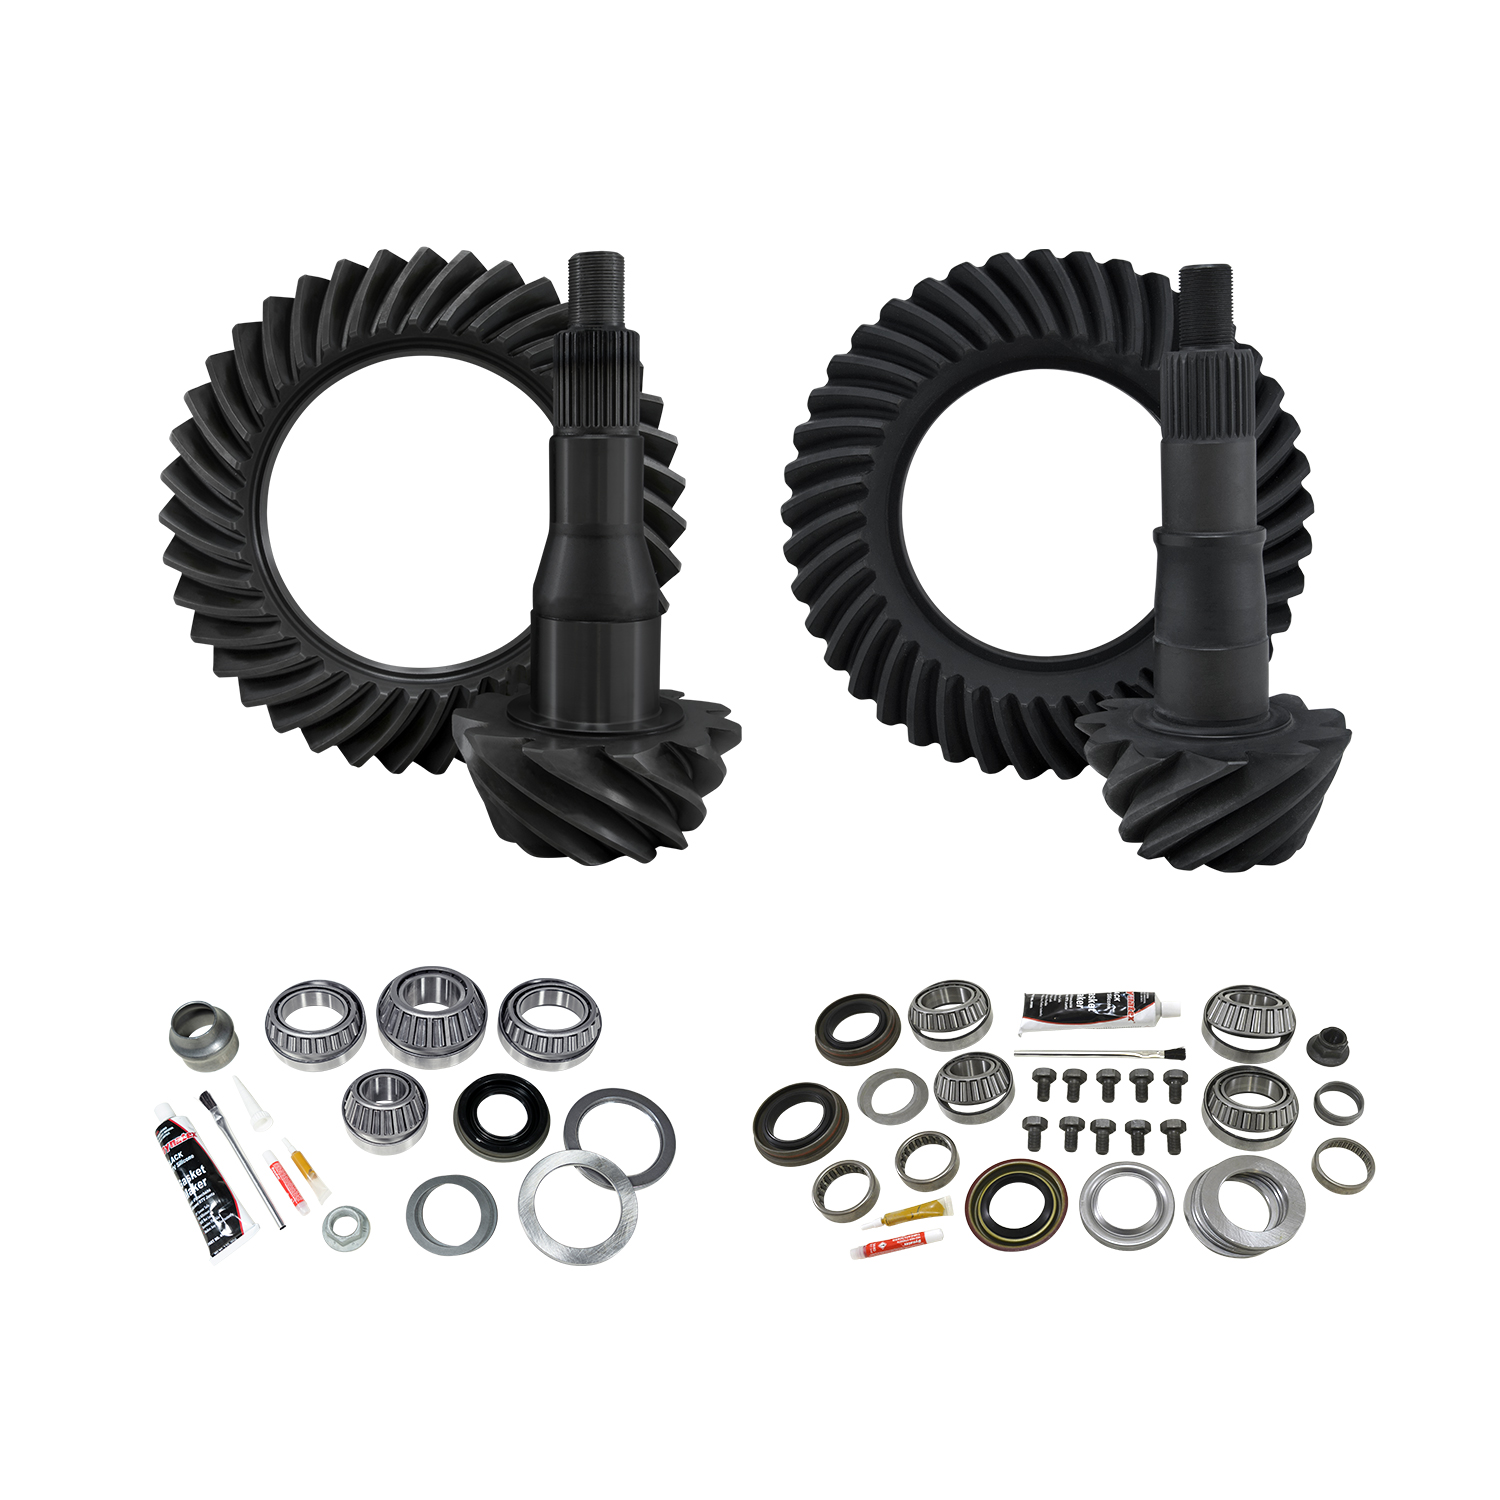 YGK107 - Yukon Complete Gear and Kit Pakage for Various Ford F150 with 9.75